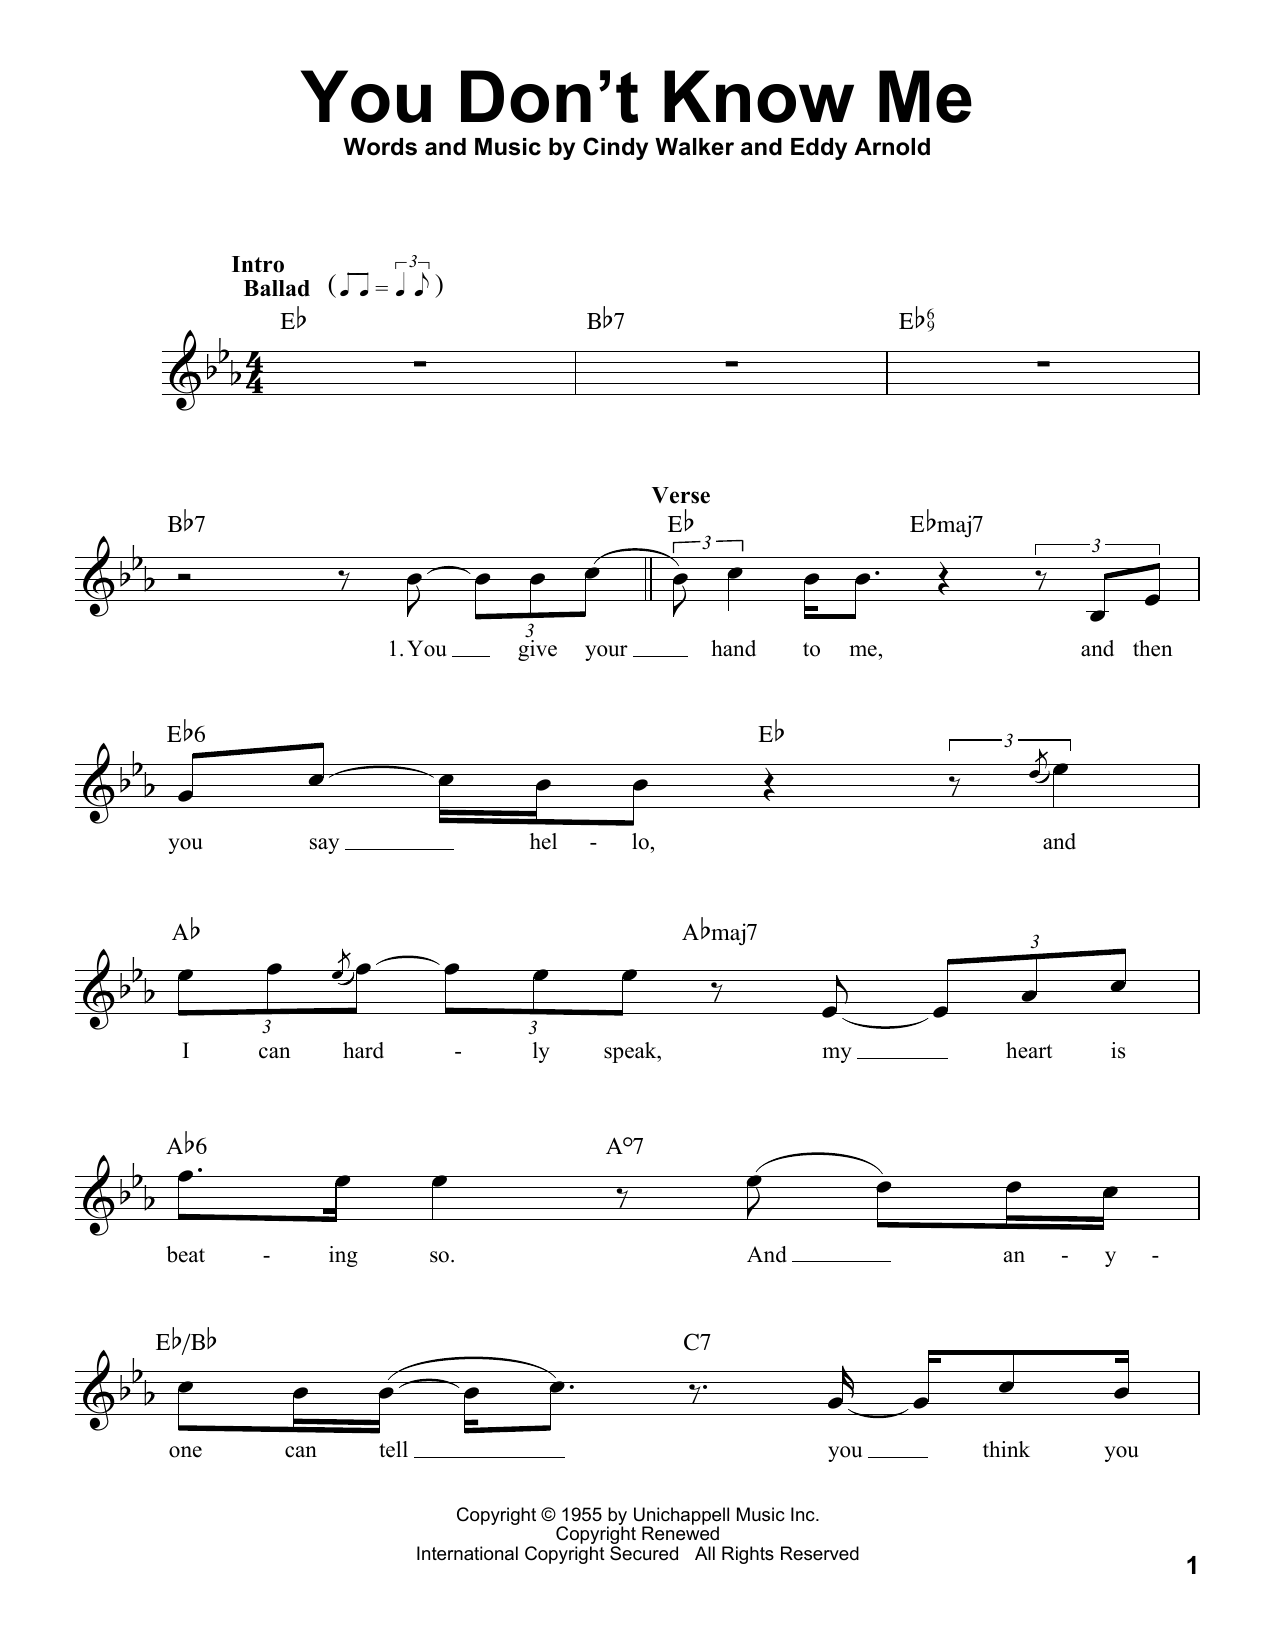 You Don't Know Me Sheet Music